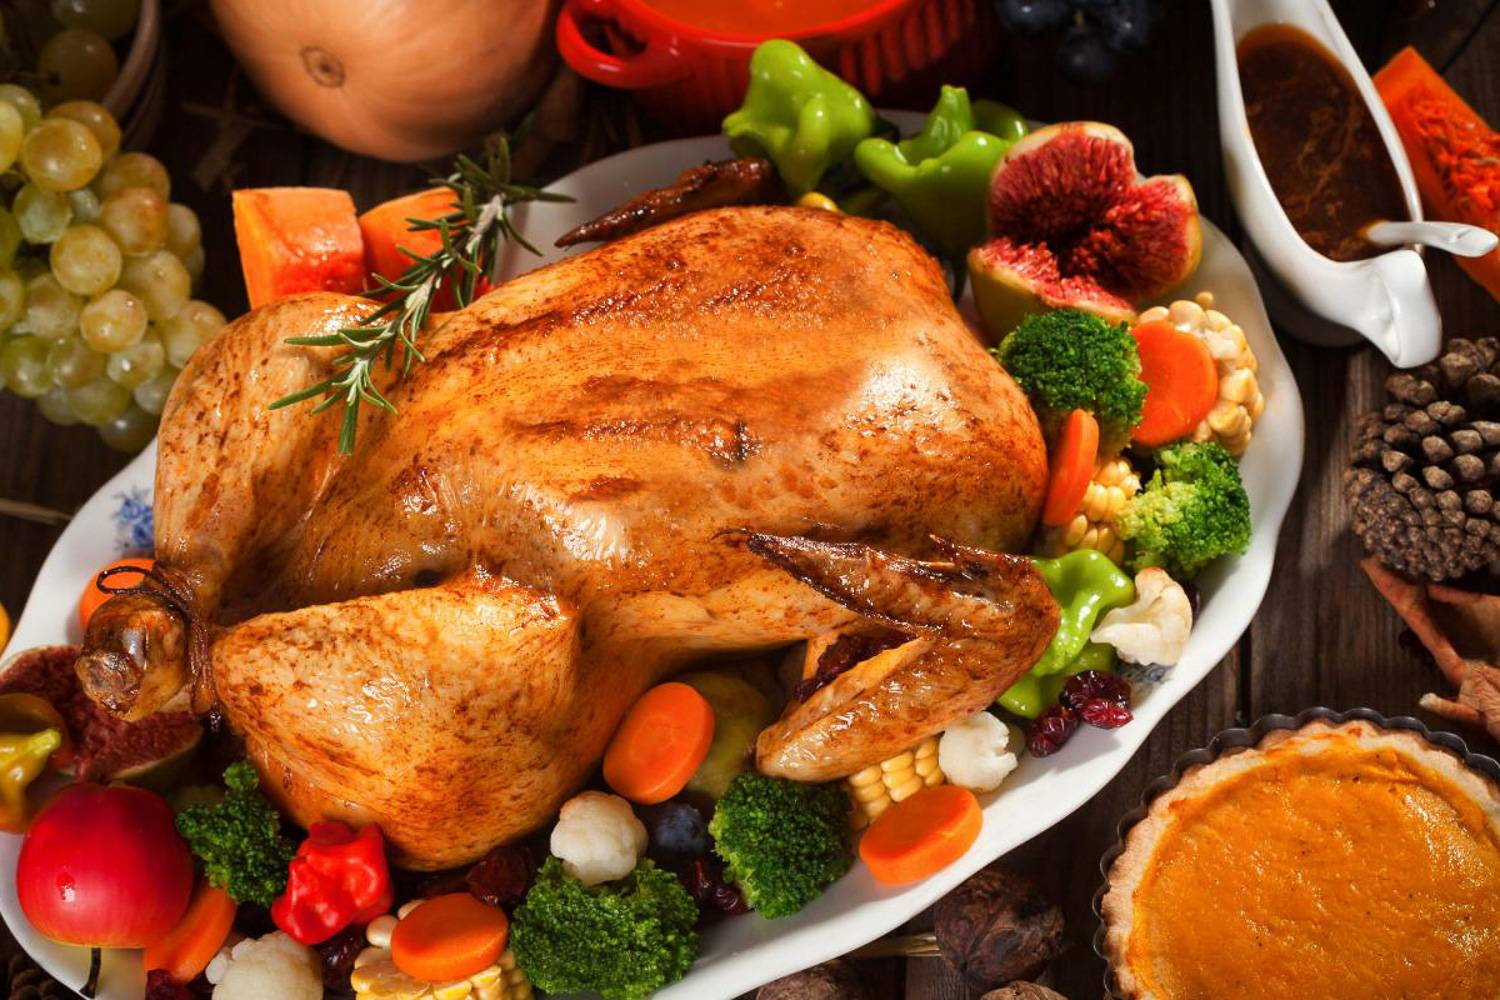 Image of a golden brown turkey in the center of Thanksgiving decorations